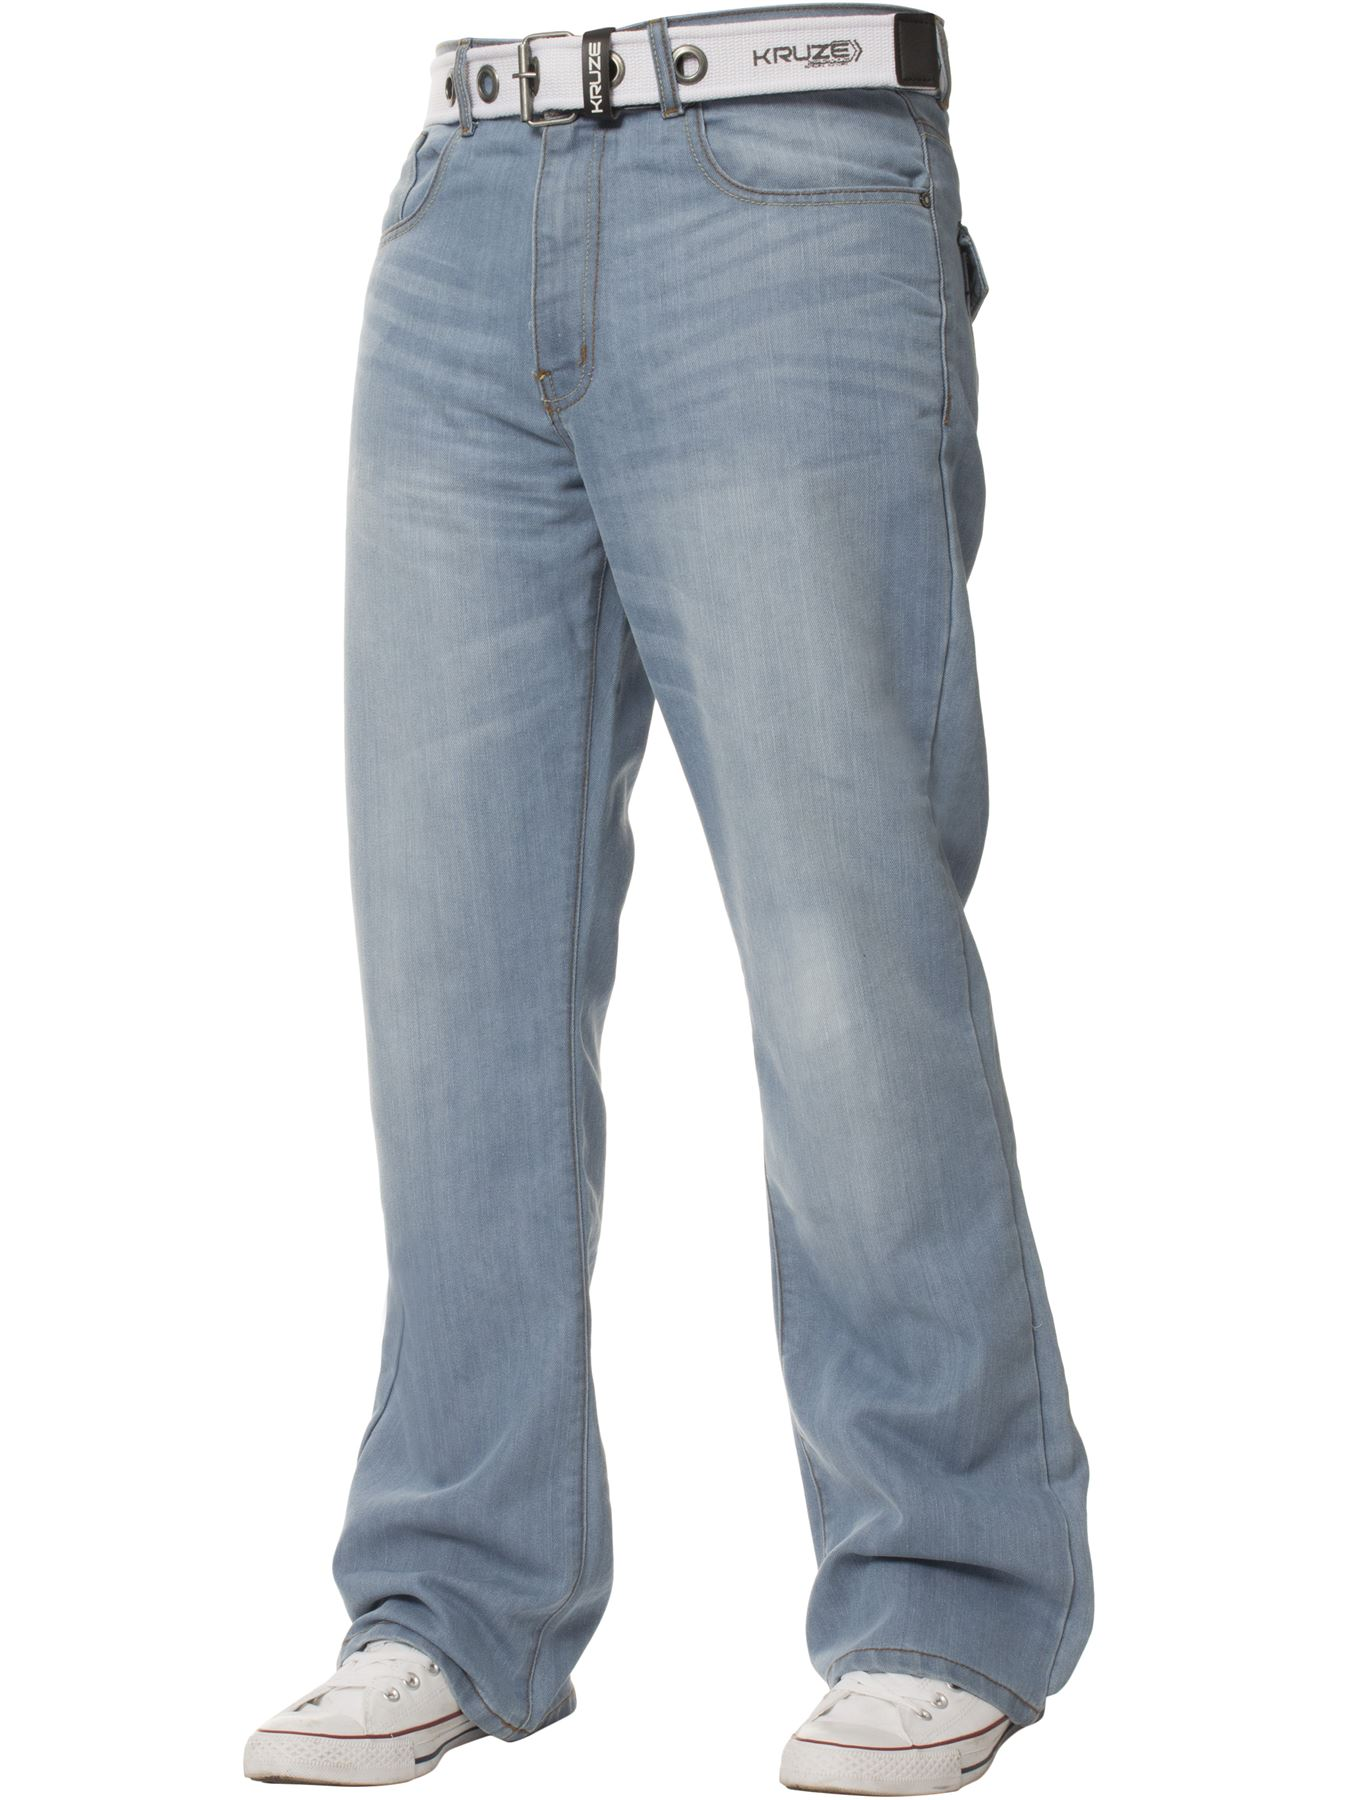 Kruze-Denim-New-Mens-Bootcut-Jeans-Wide-Leg-Flare-Pants-King-Big-All-Waist-Sizes thumbnail 15